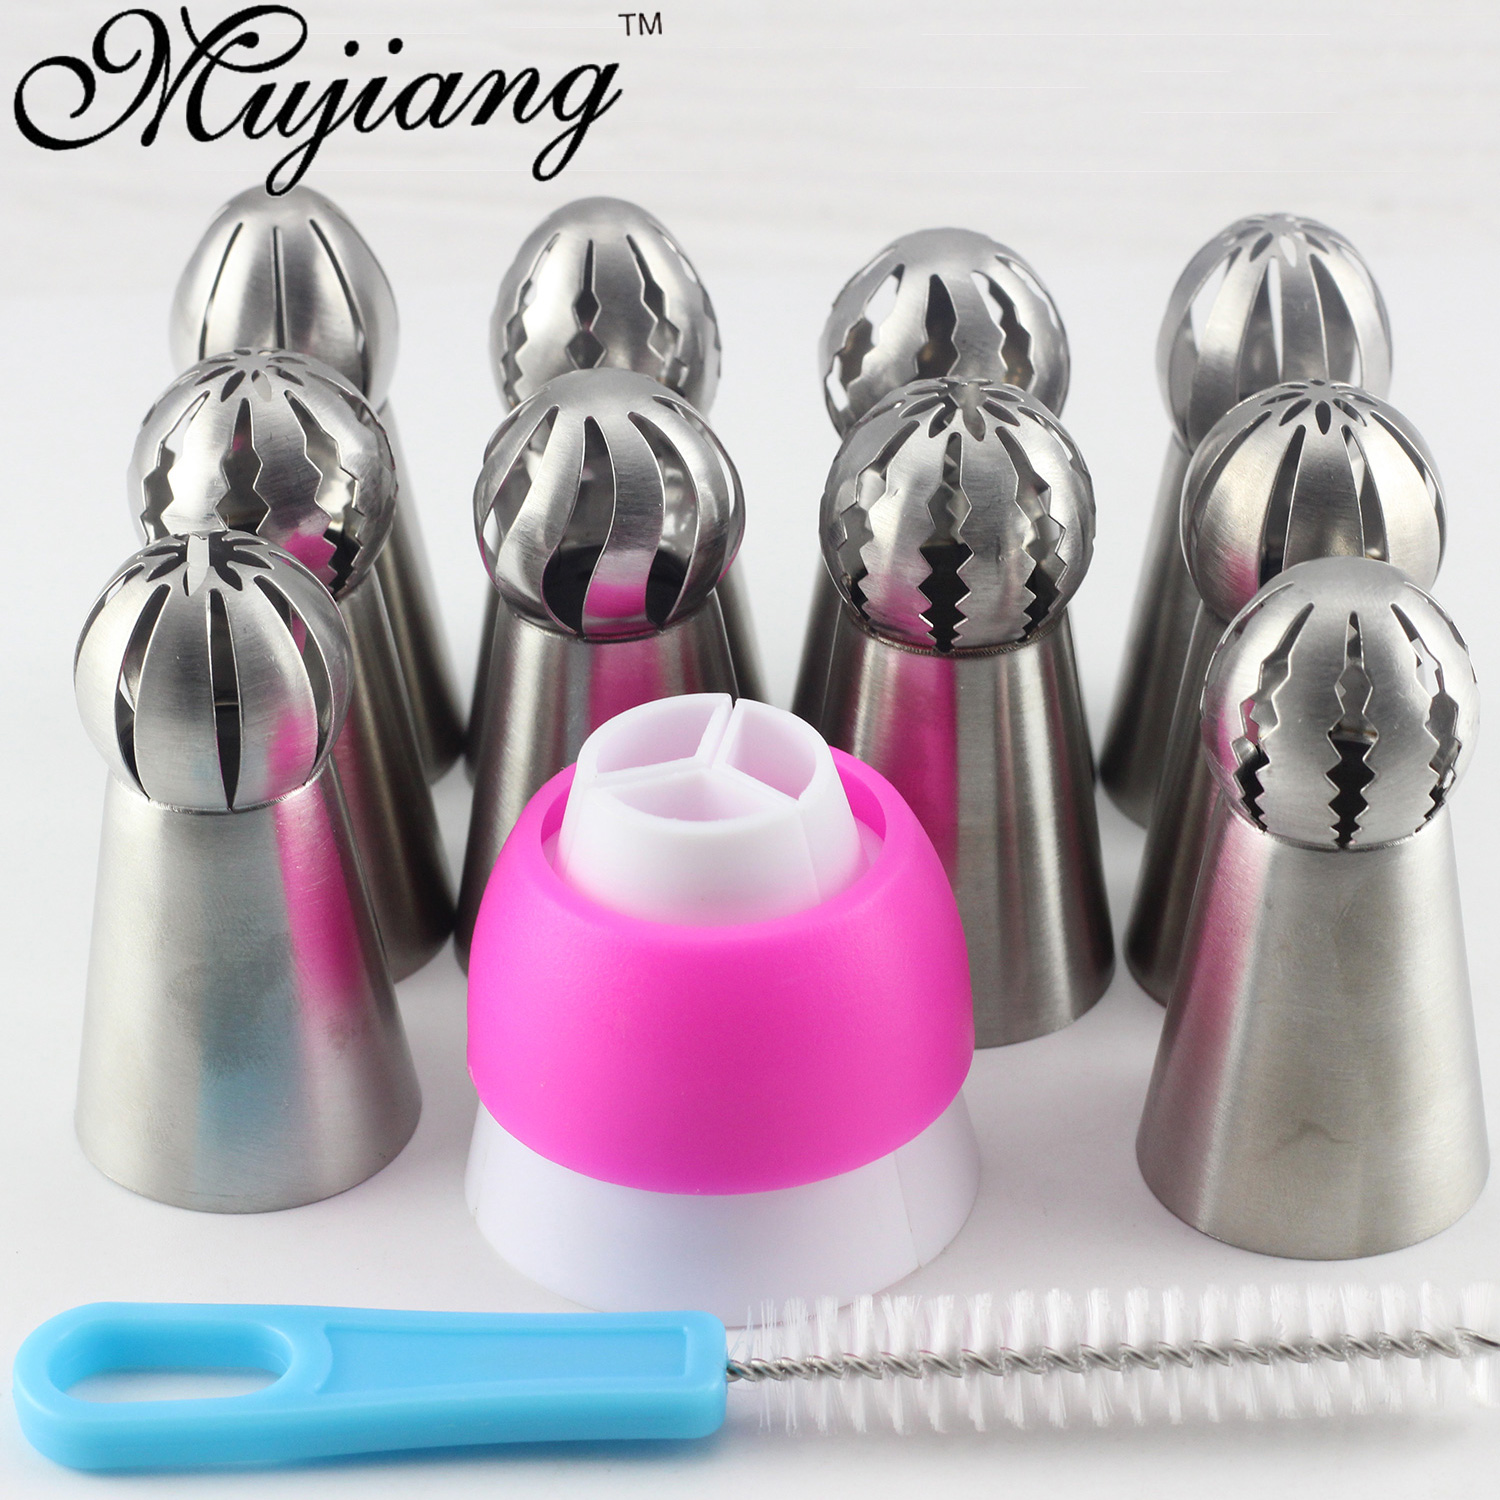 Mujiang 12Pcs Russian Pastry Tips Sphere Ball Icing Piping Nozzles Stainless Steel Cream Cupcake Baking Cake Decorating Tools